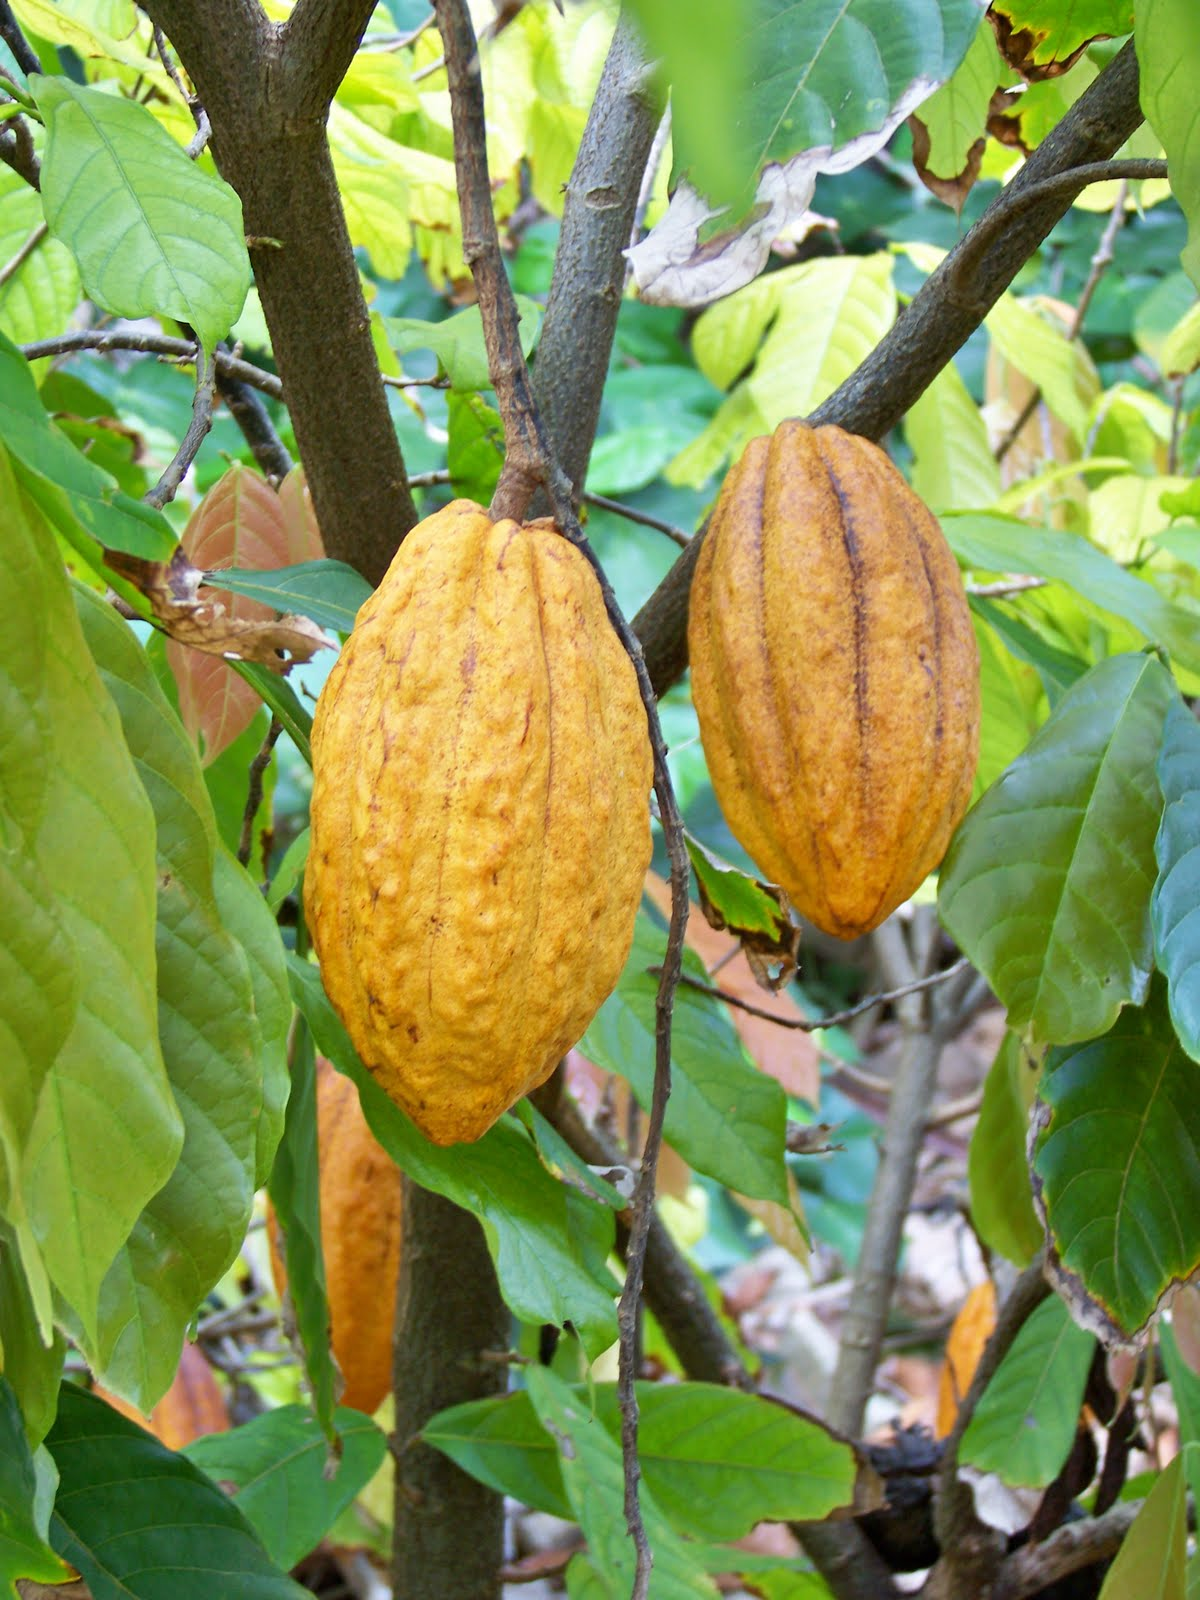 Cocoa or cacao